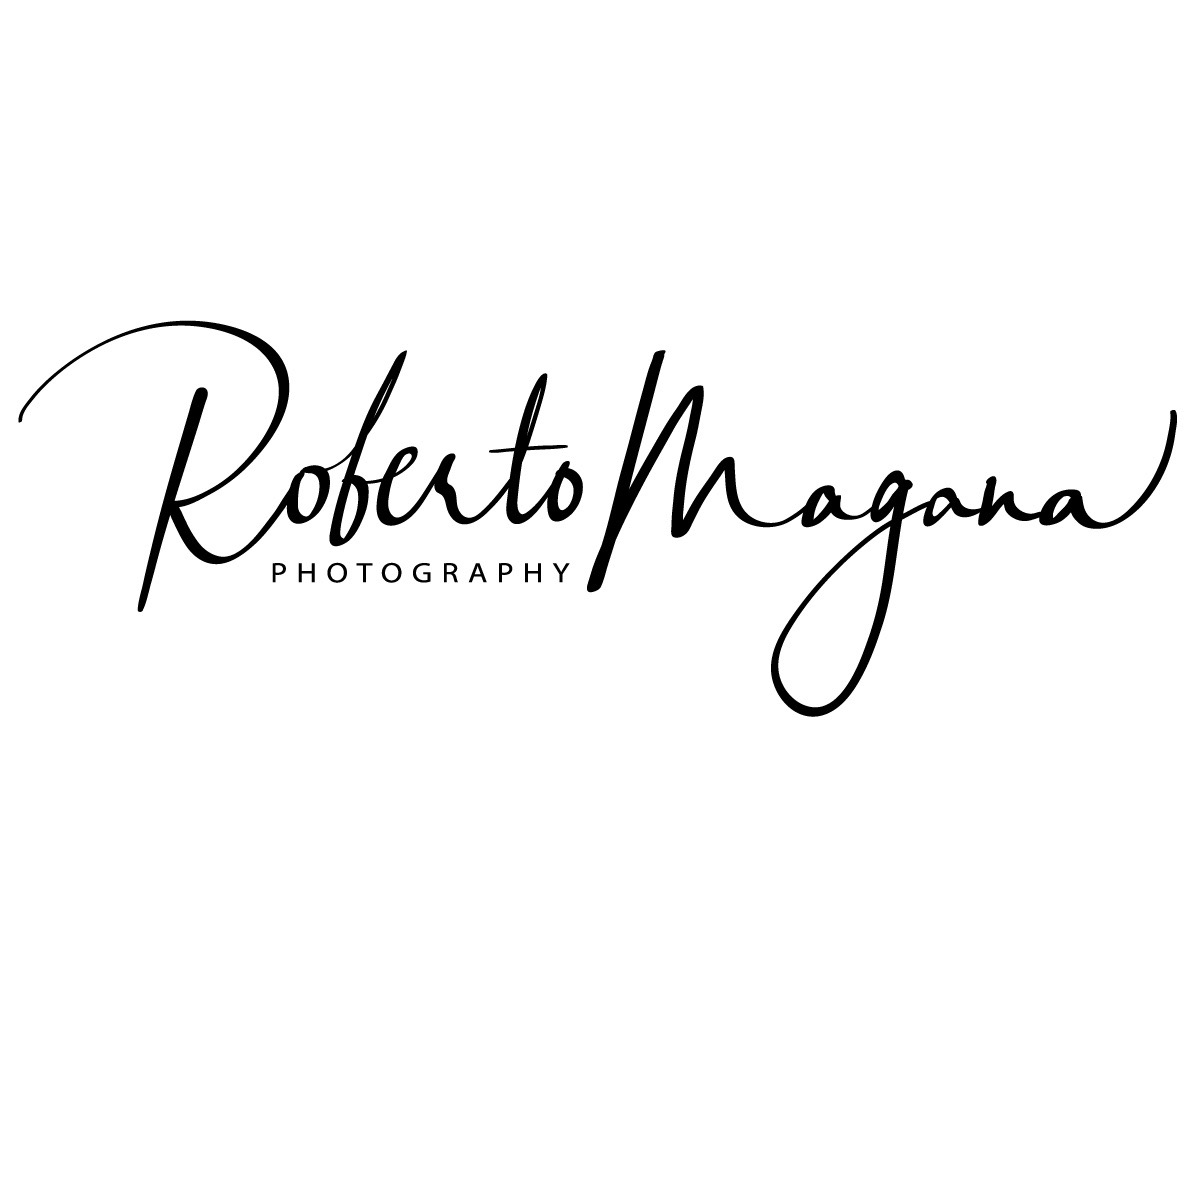 Roberto Magana Photography